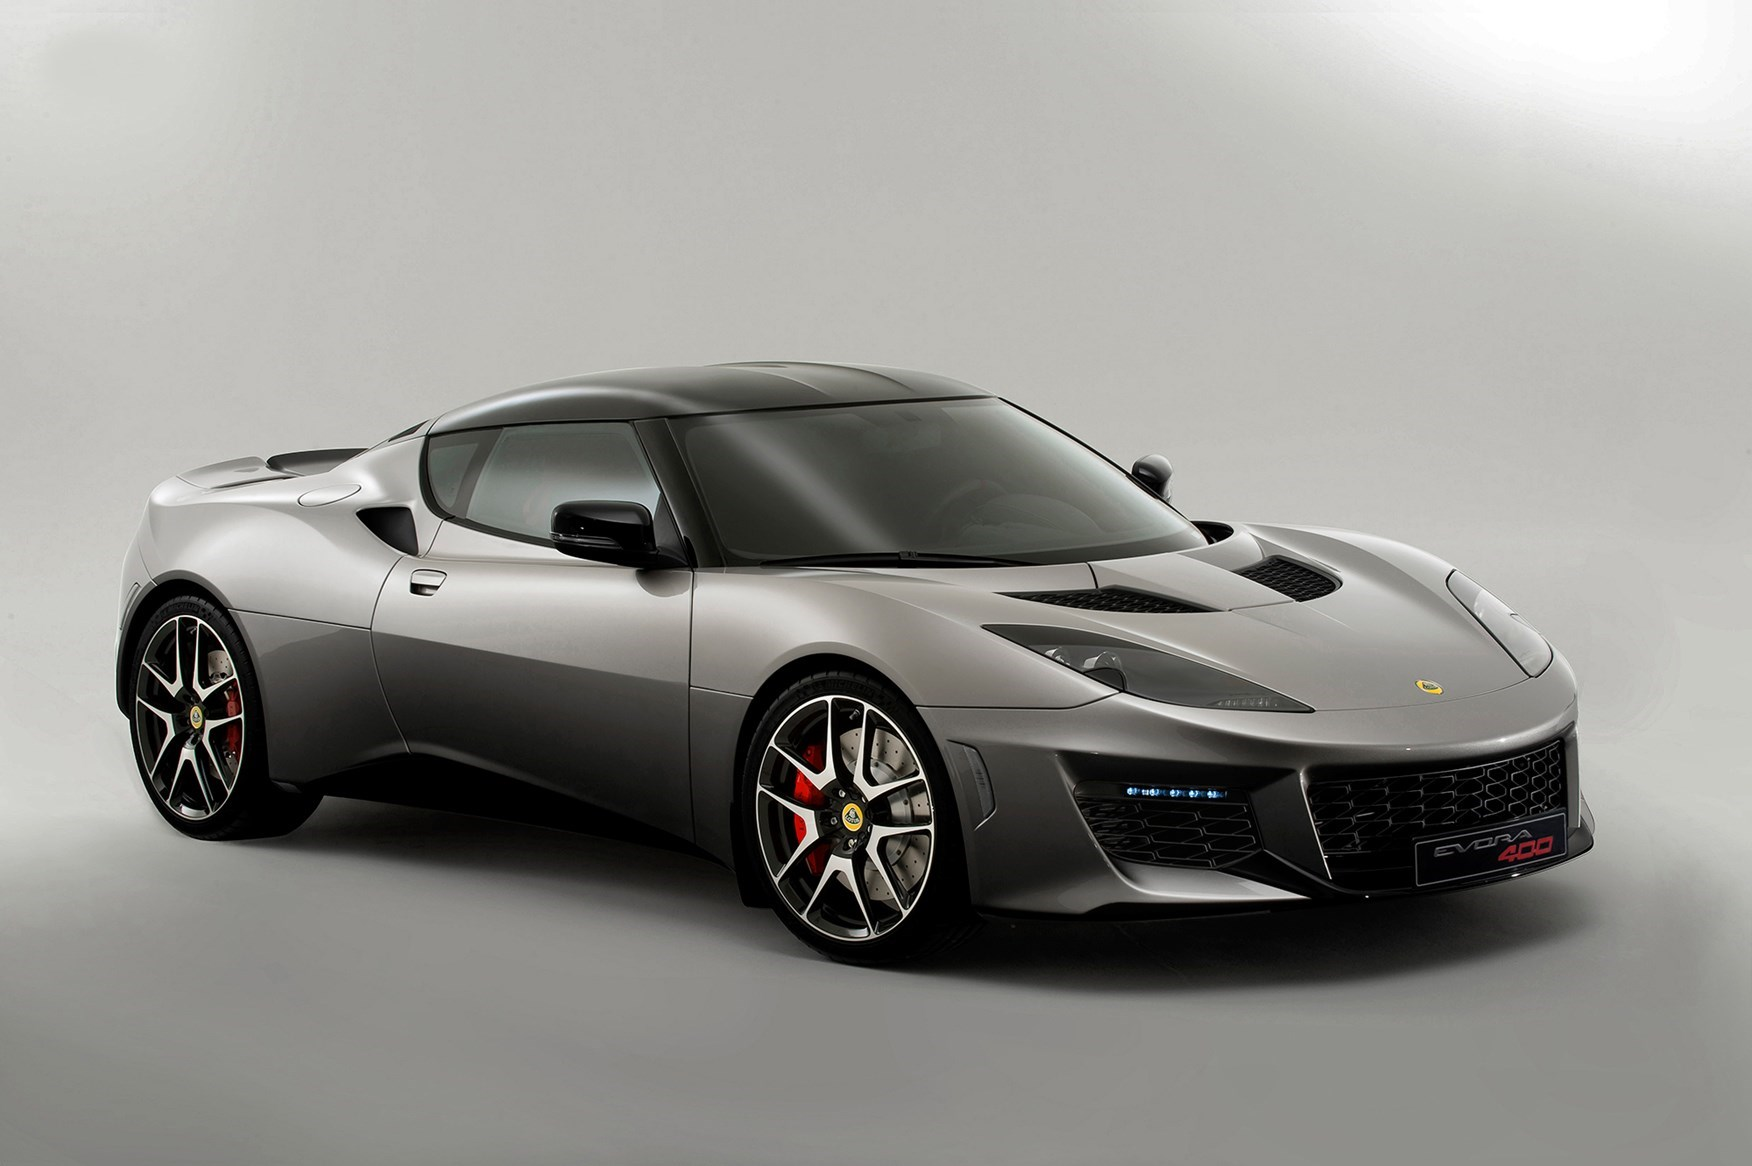 Lotus Evora Price Jump Confirmed: Evora 400 Costs £72k By